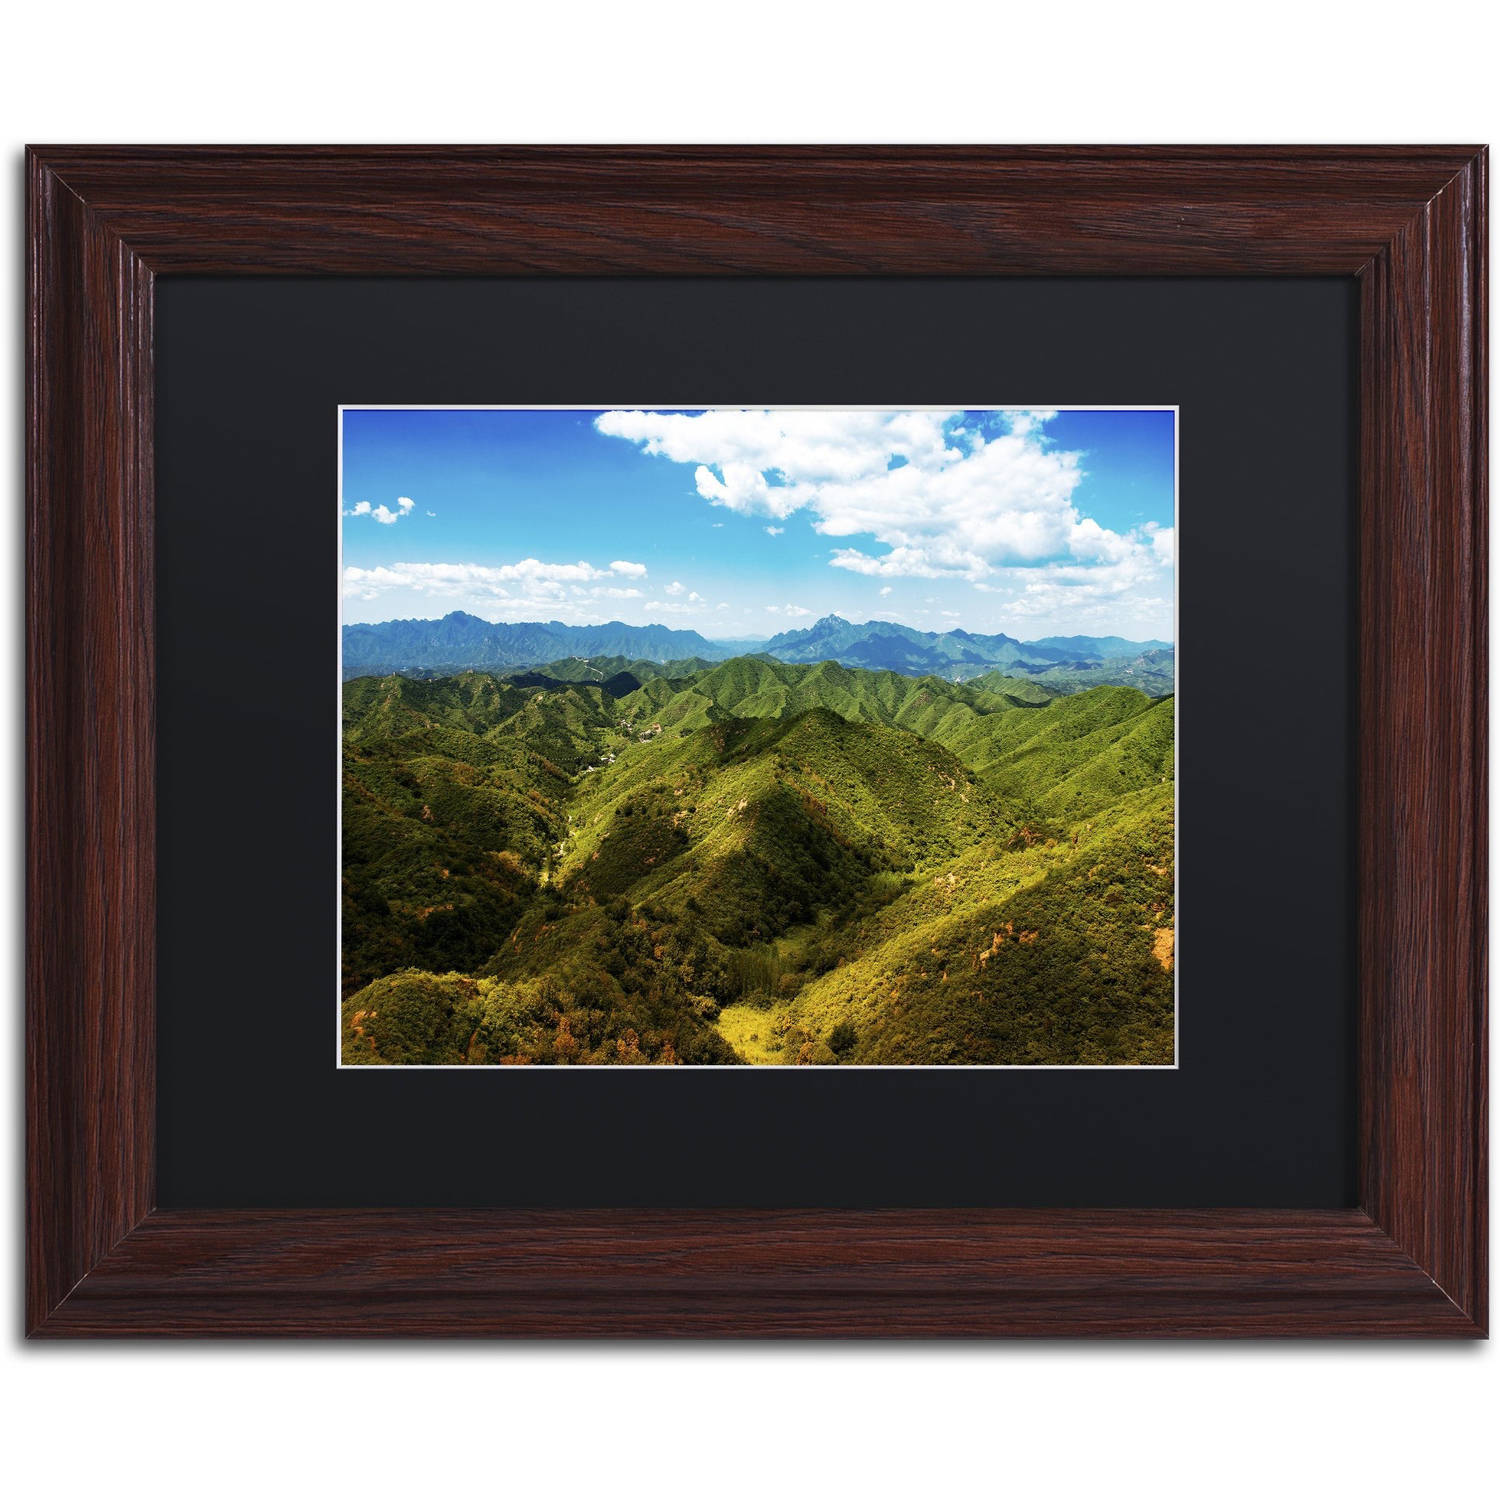 "Trademark Fine Art ""Great Wall XII"" Canvas Art by Philippe Hugonnard, Black Matte, Wood Frame"